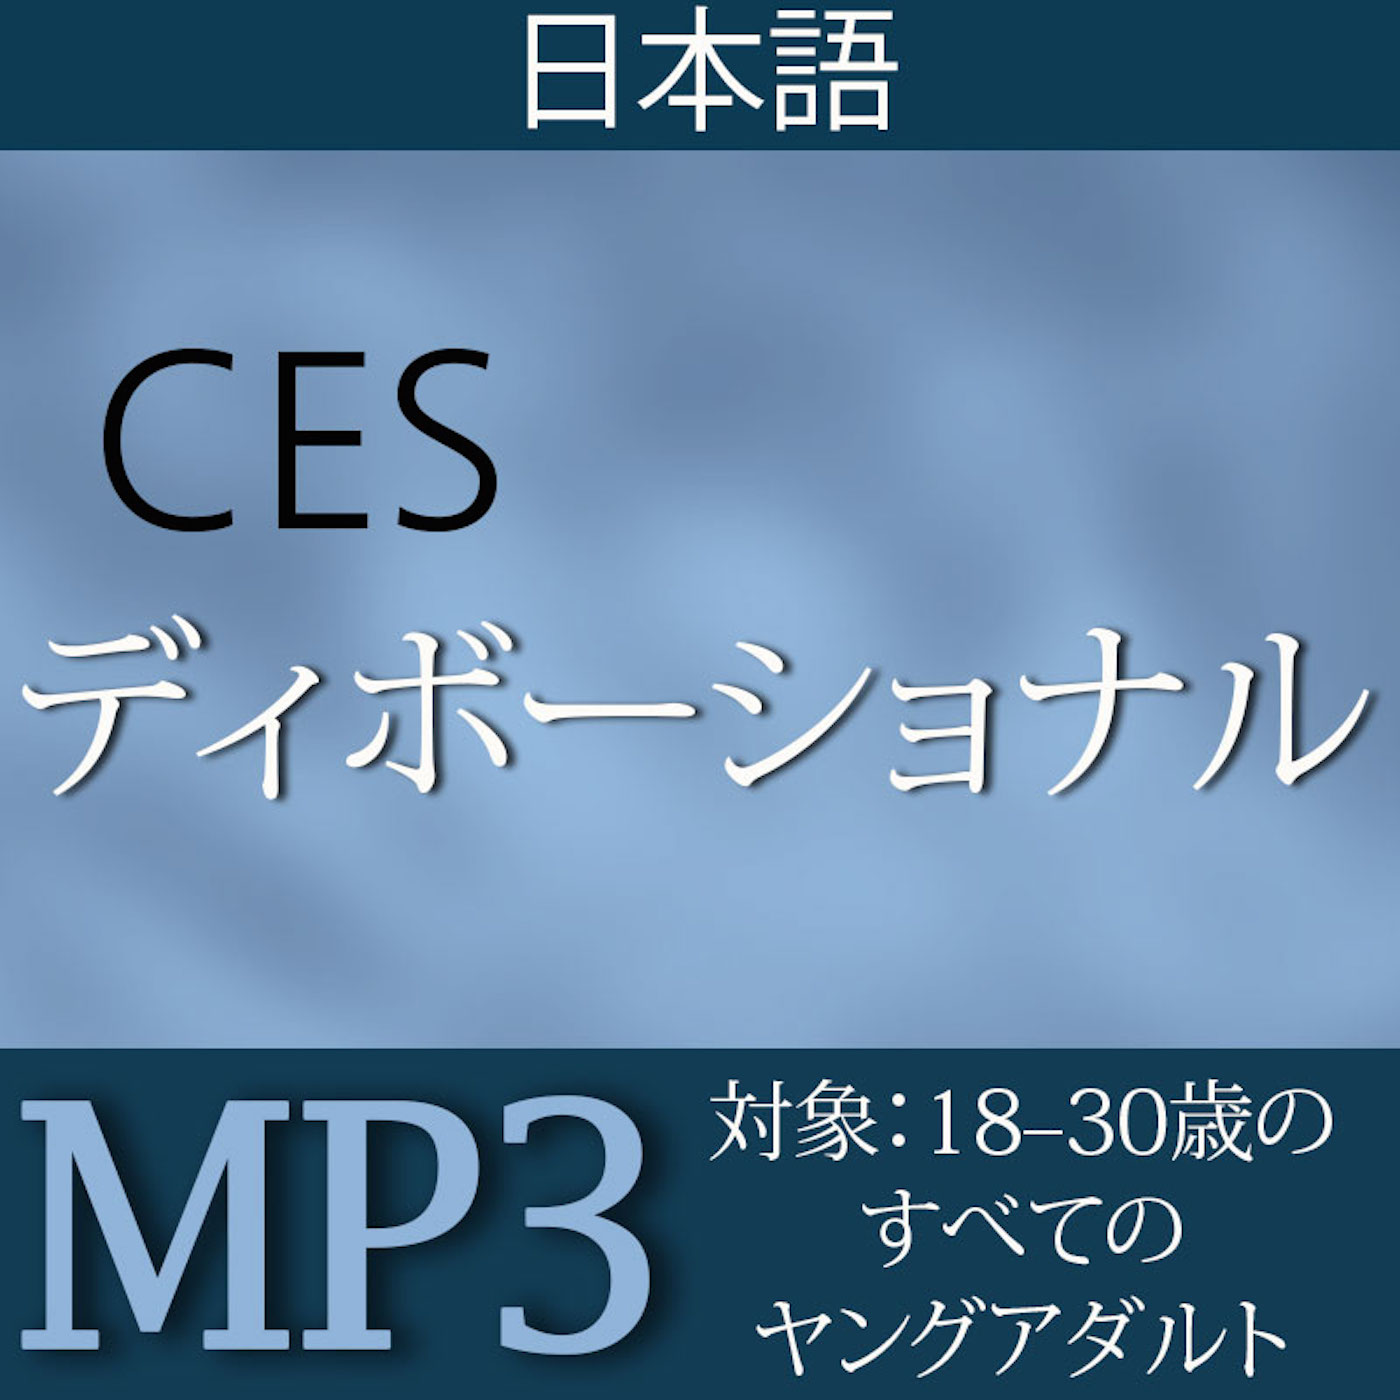 Worldwide Devotional For Young Adults | MP3 | JAPANESE